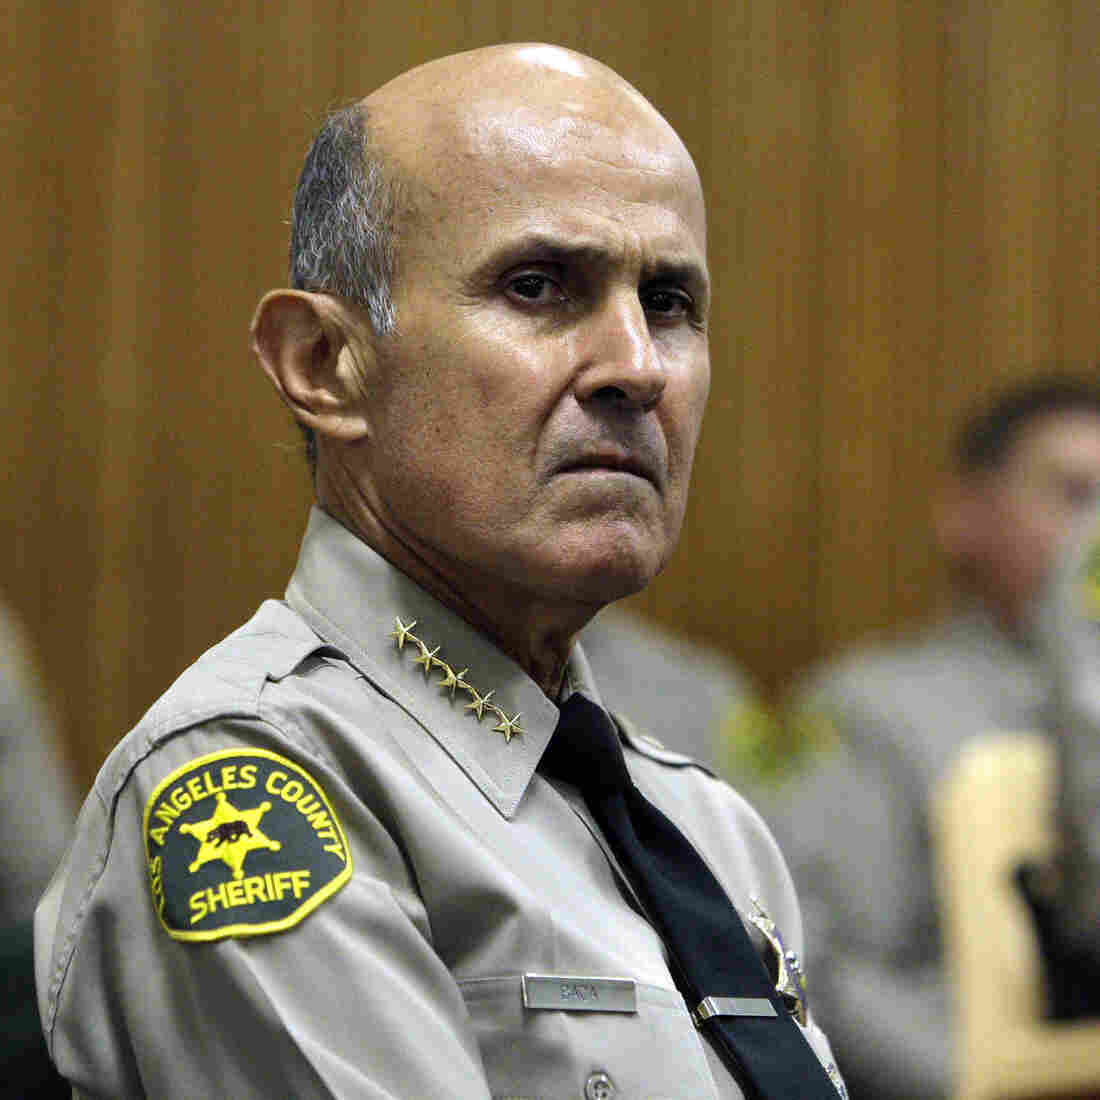 Embattled LA Sheriff Still Plans To Give Fifth Term A Shot